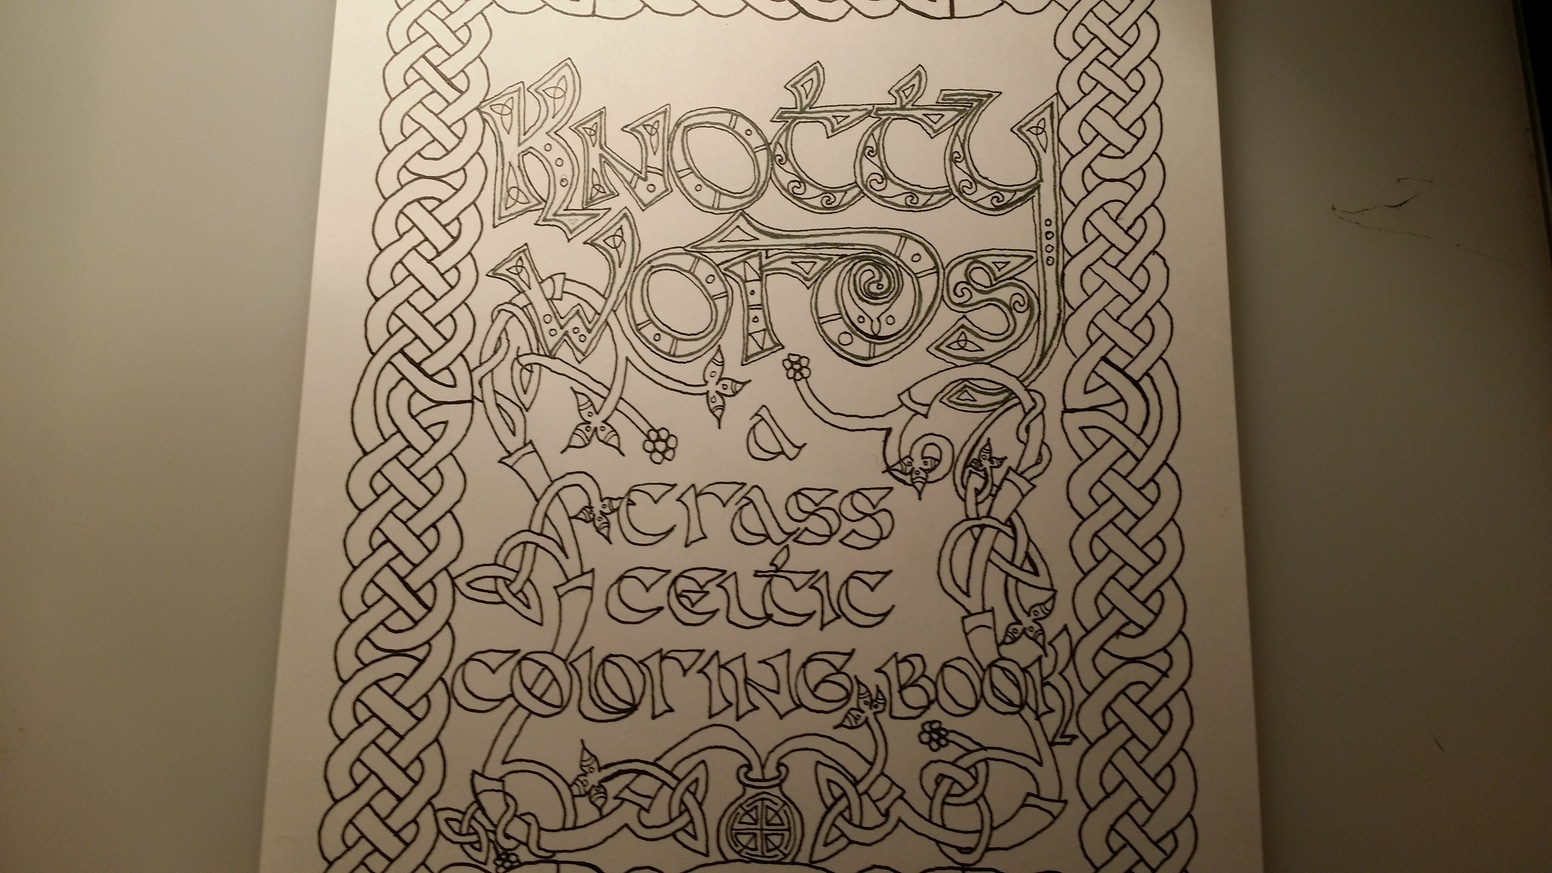 Knotty Words: A Crass Celtic Coloring Book by Mathew \